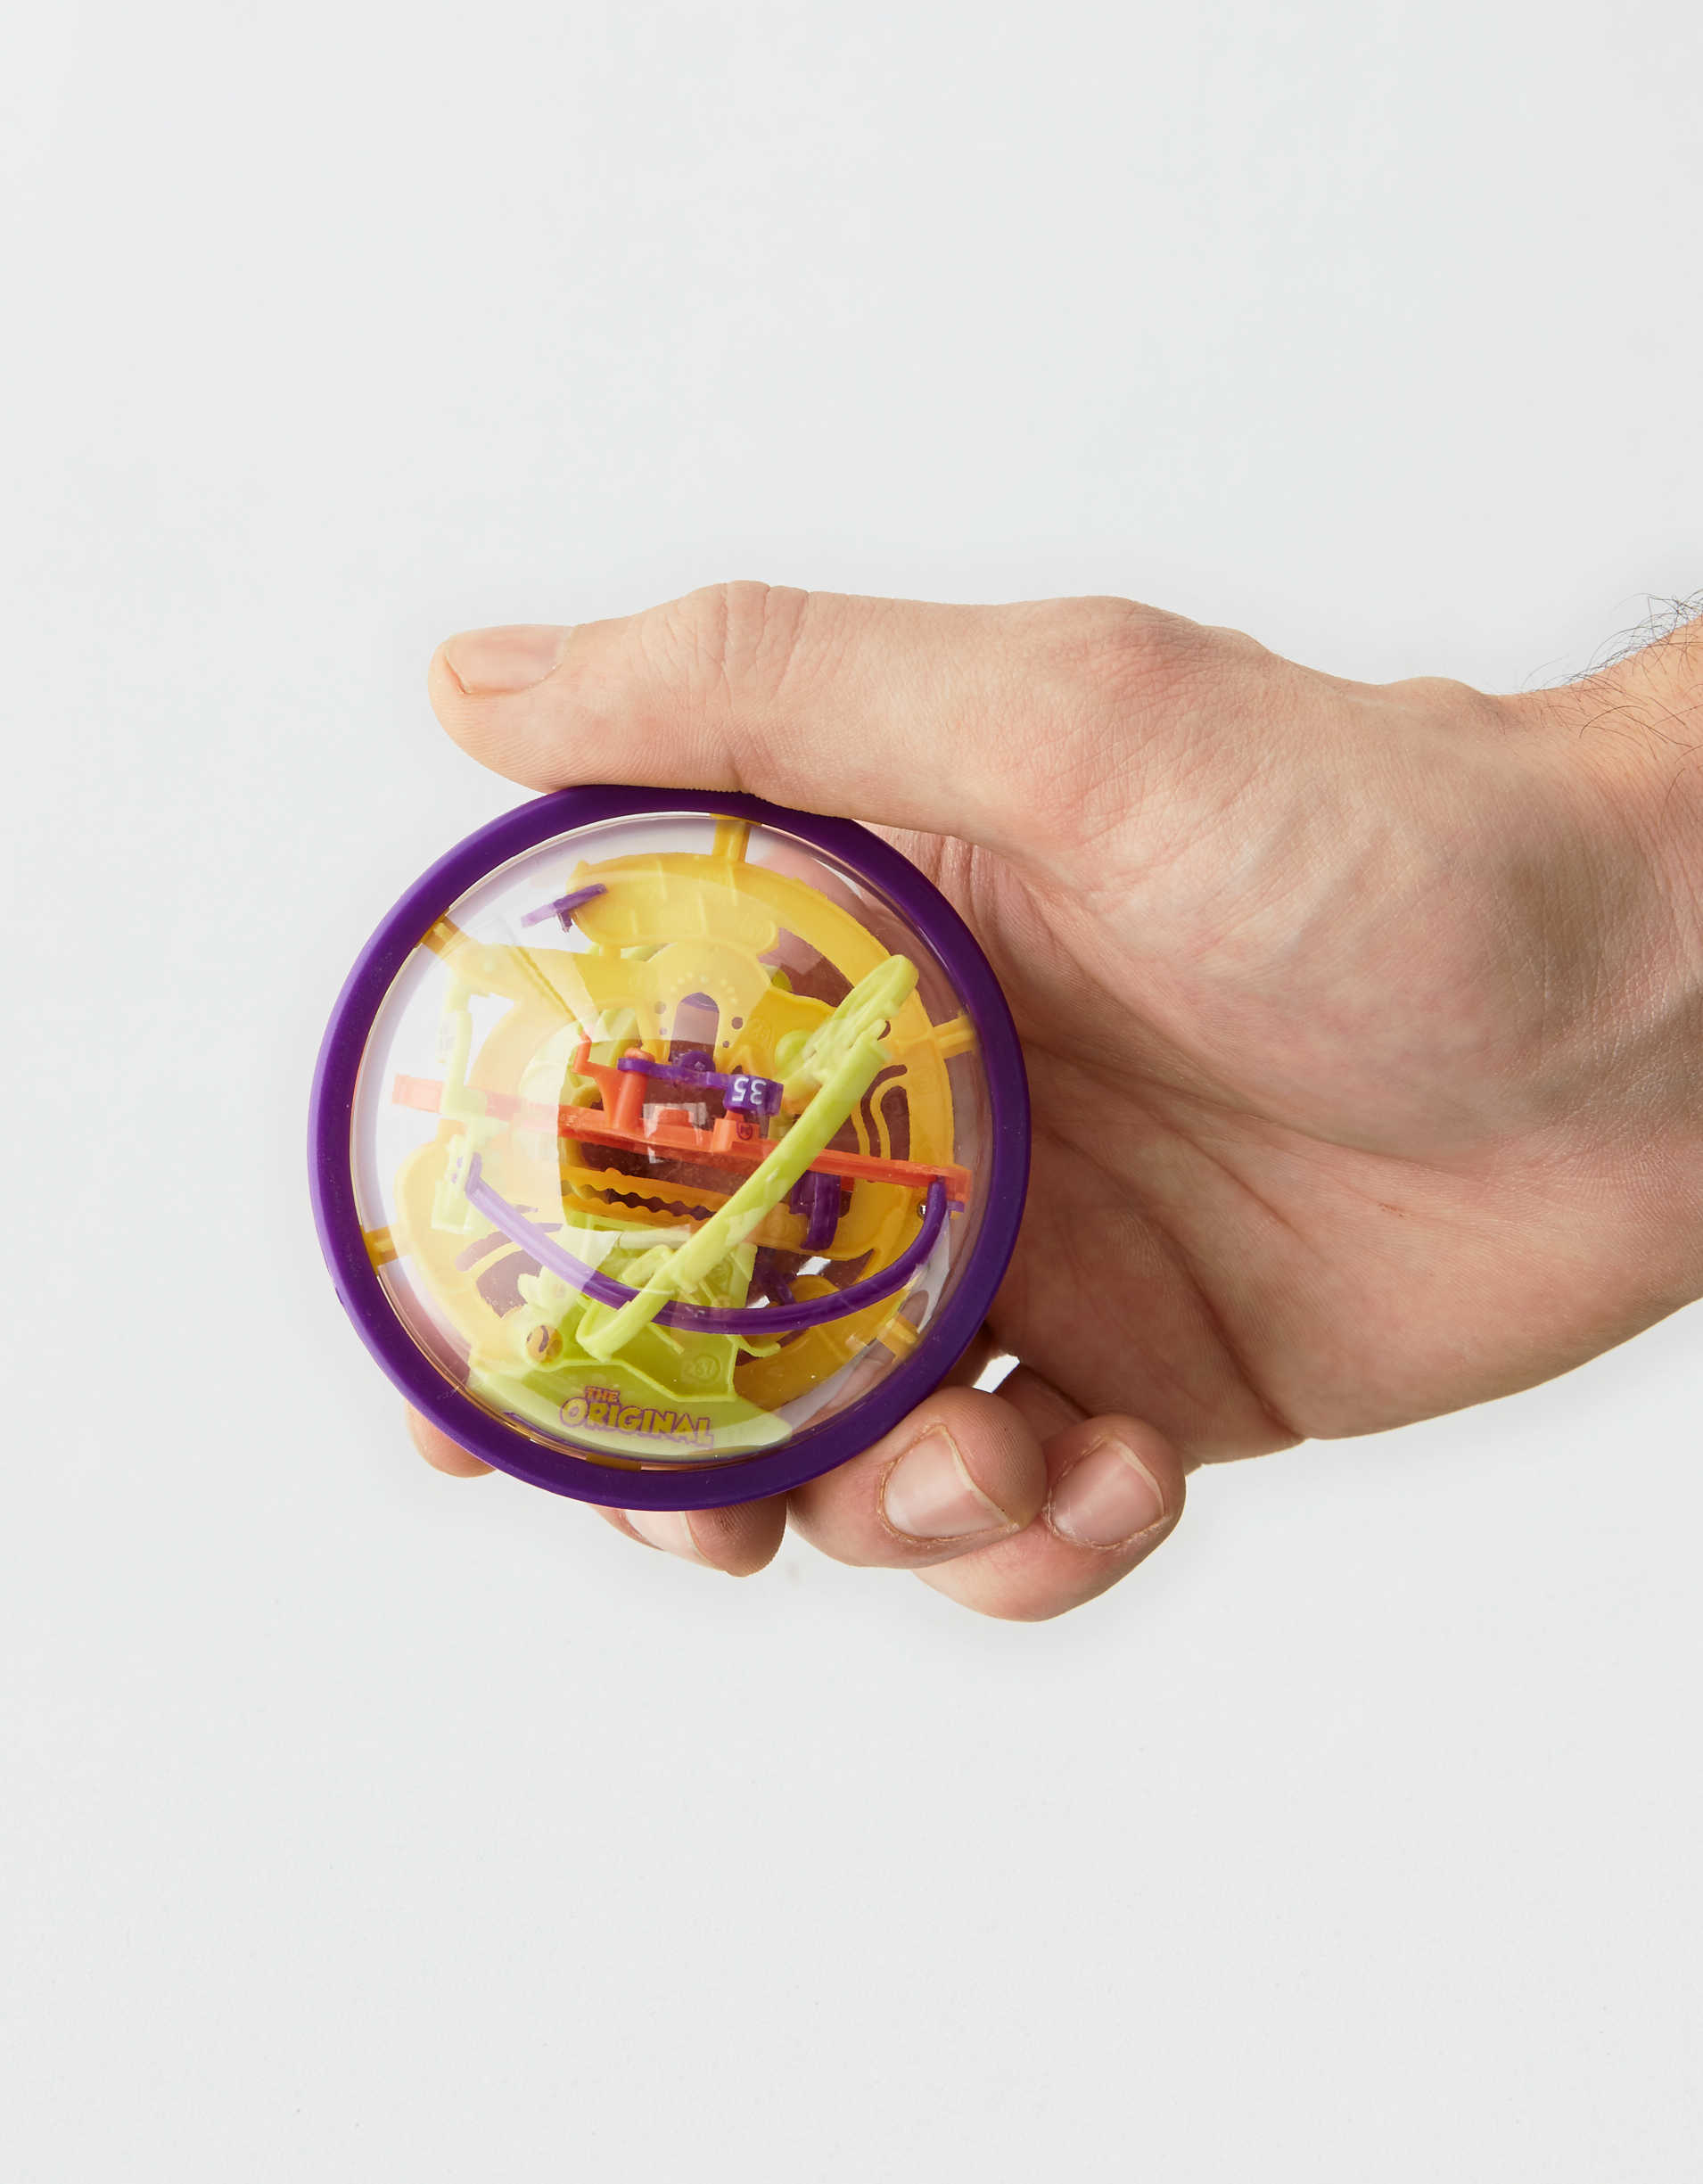 World's Smallest Perplexus